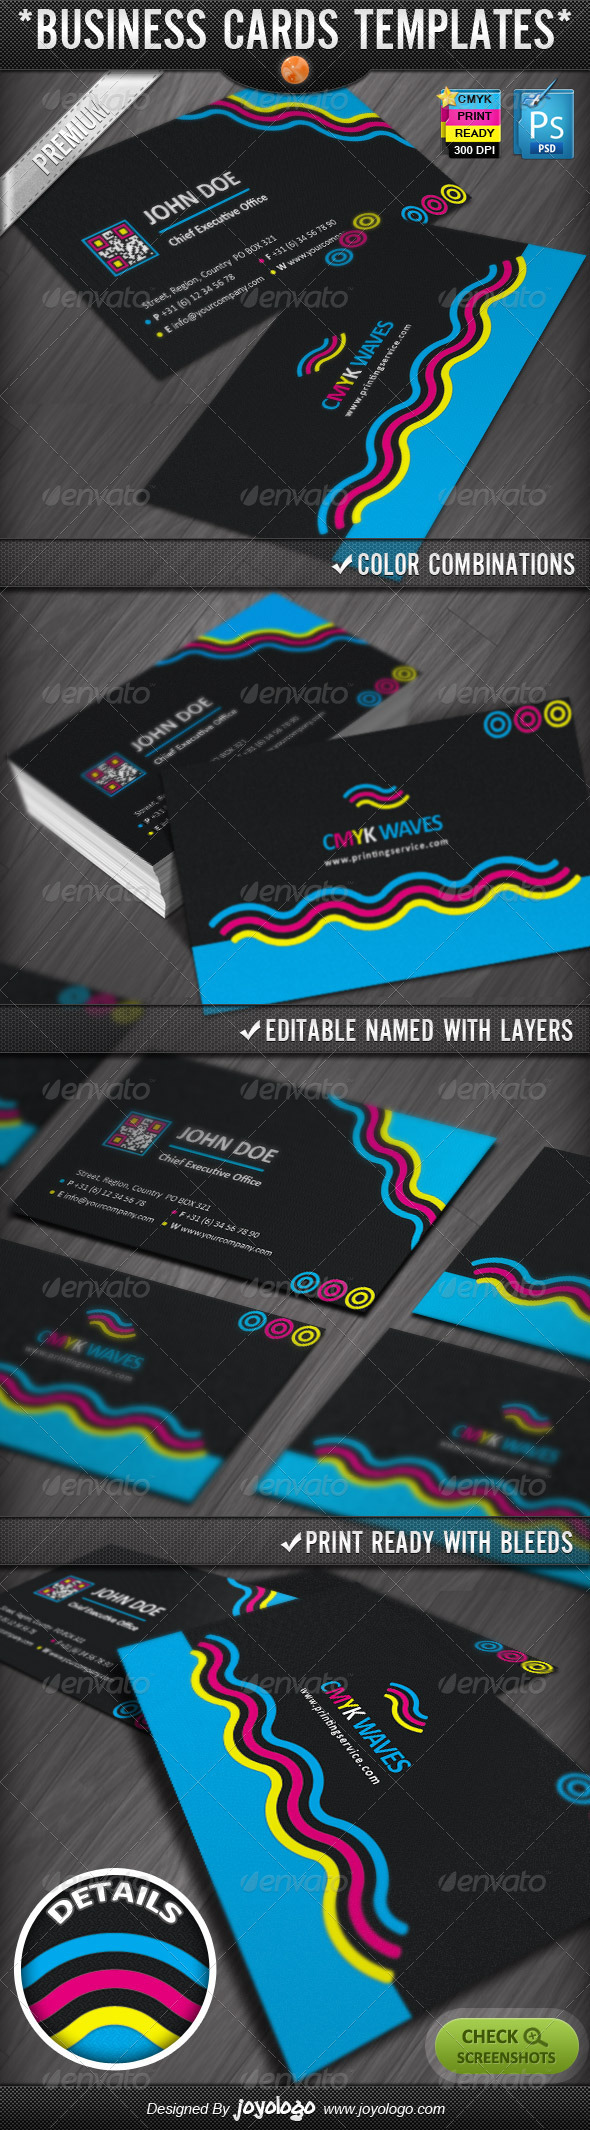 CMYK Colors Print Company Business Cards Design - Corporate Business Cards